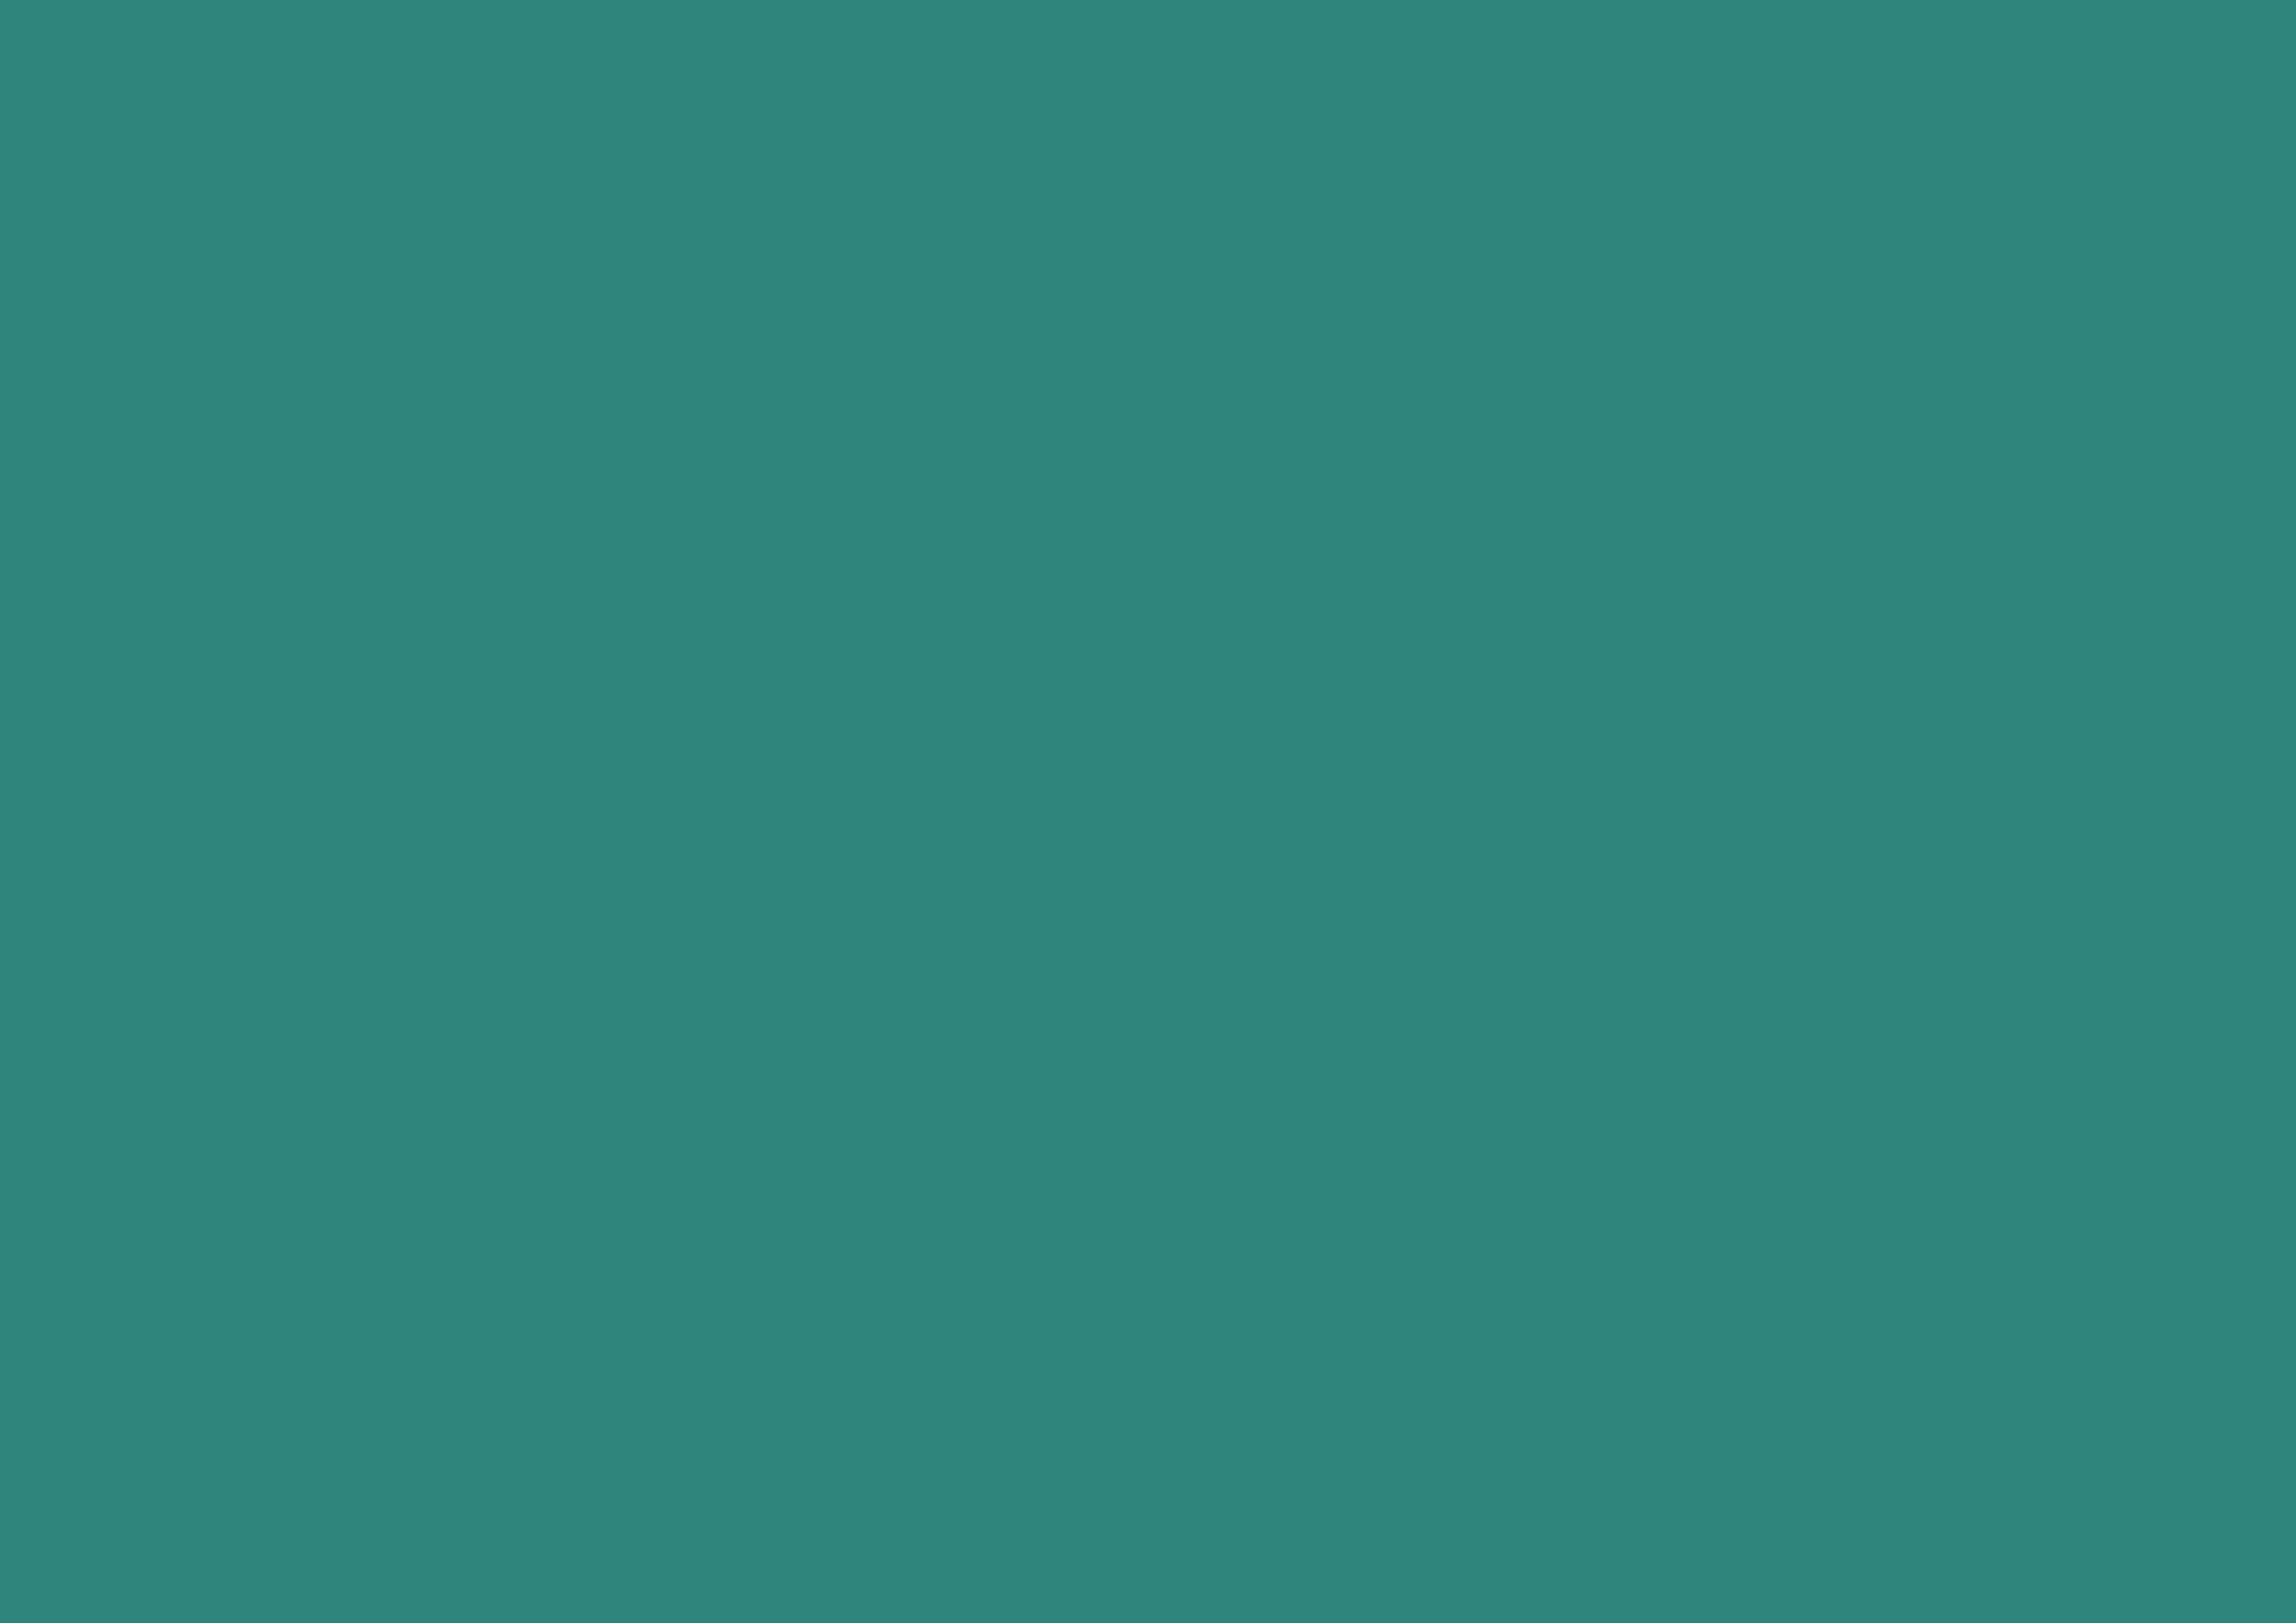 3508x2480 Celadon Green Solid Color Background